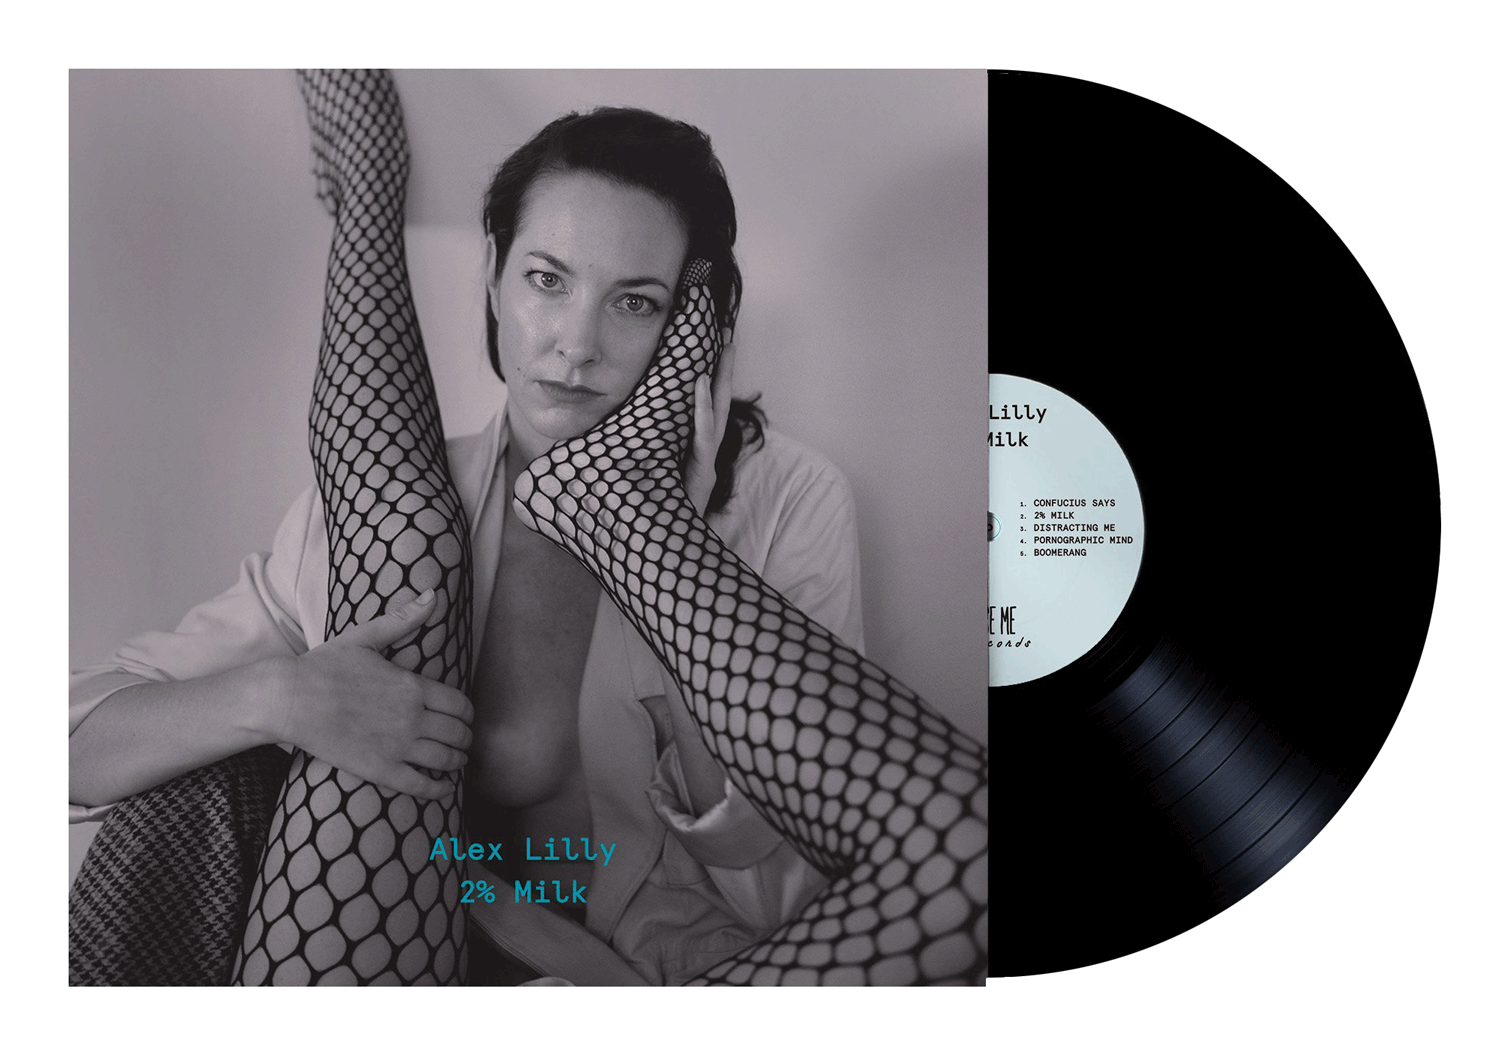 alexlilly_vinylrecord_1500px.png